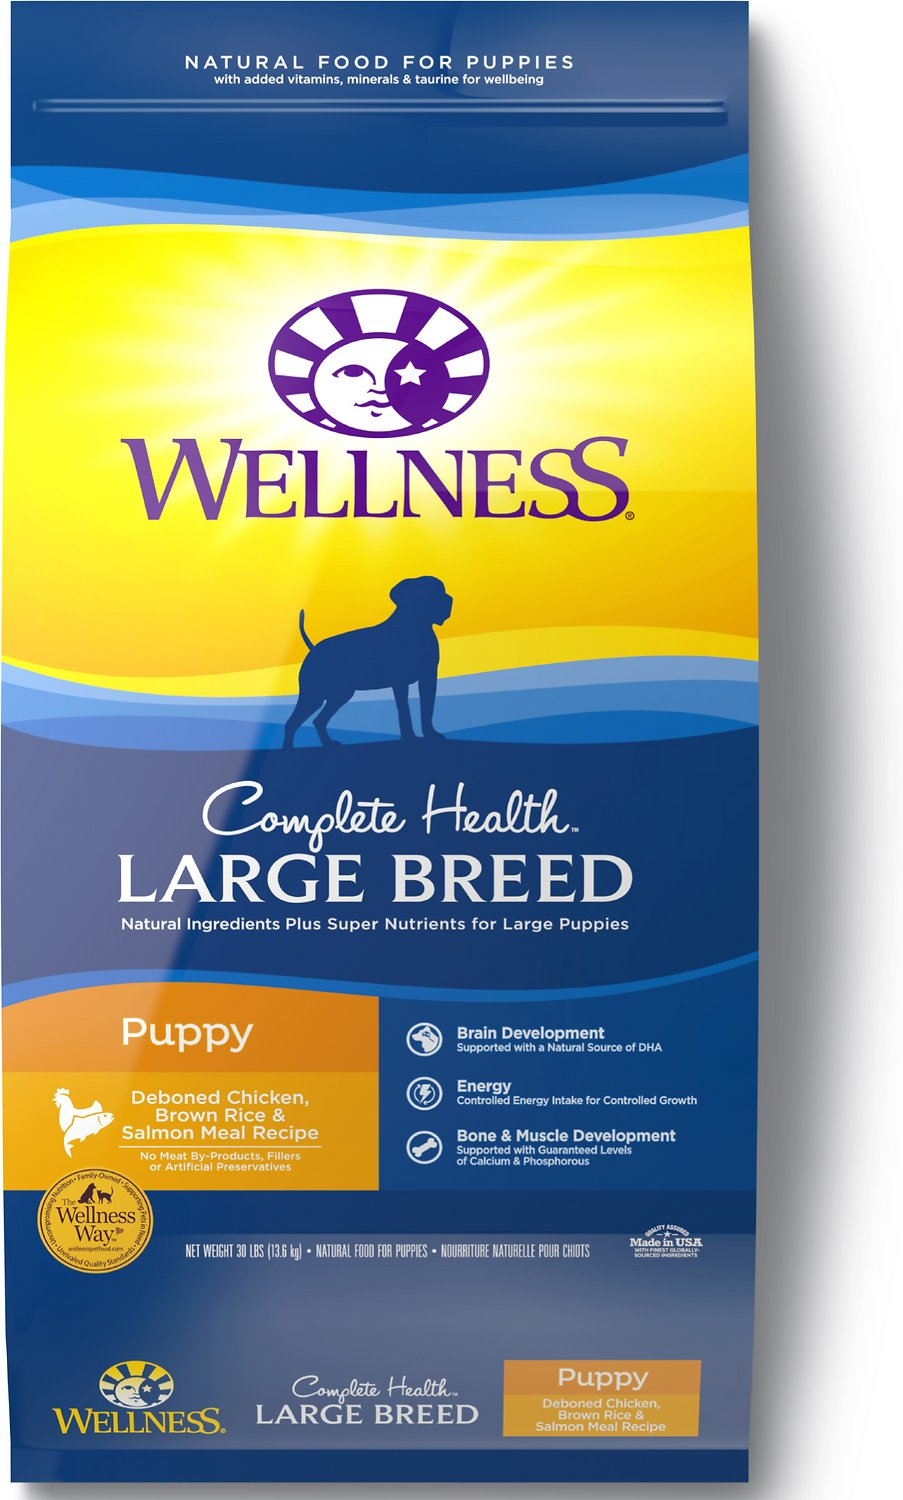 Wellness Large Breed Complete Health Puppy Deboned Chicken, Brown Rice & Salmon Meal Recipe Dry Dog Food Image